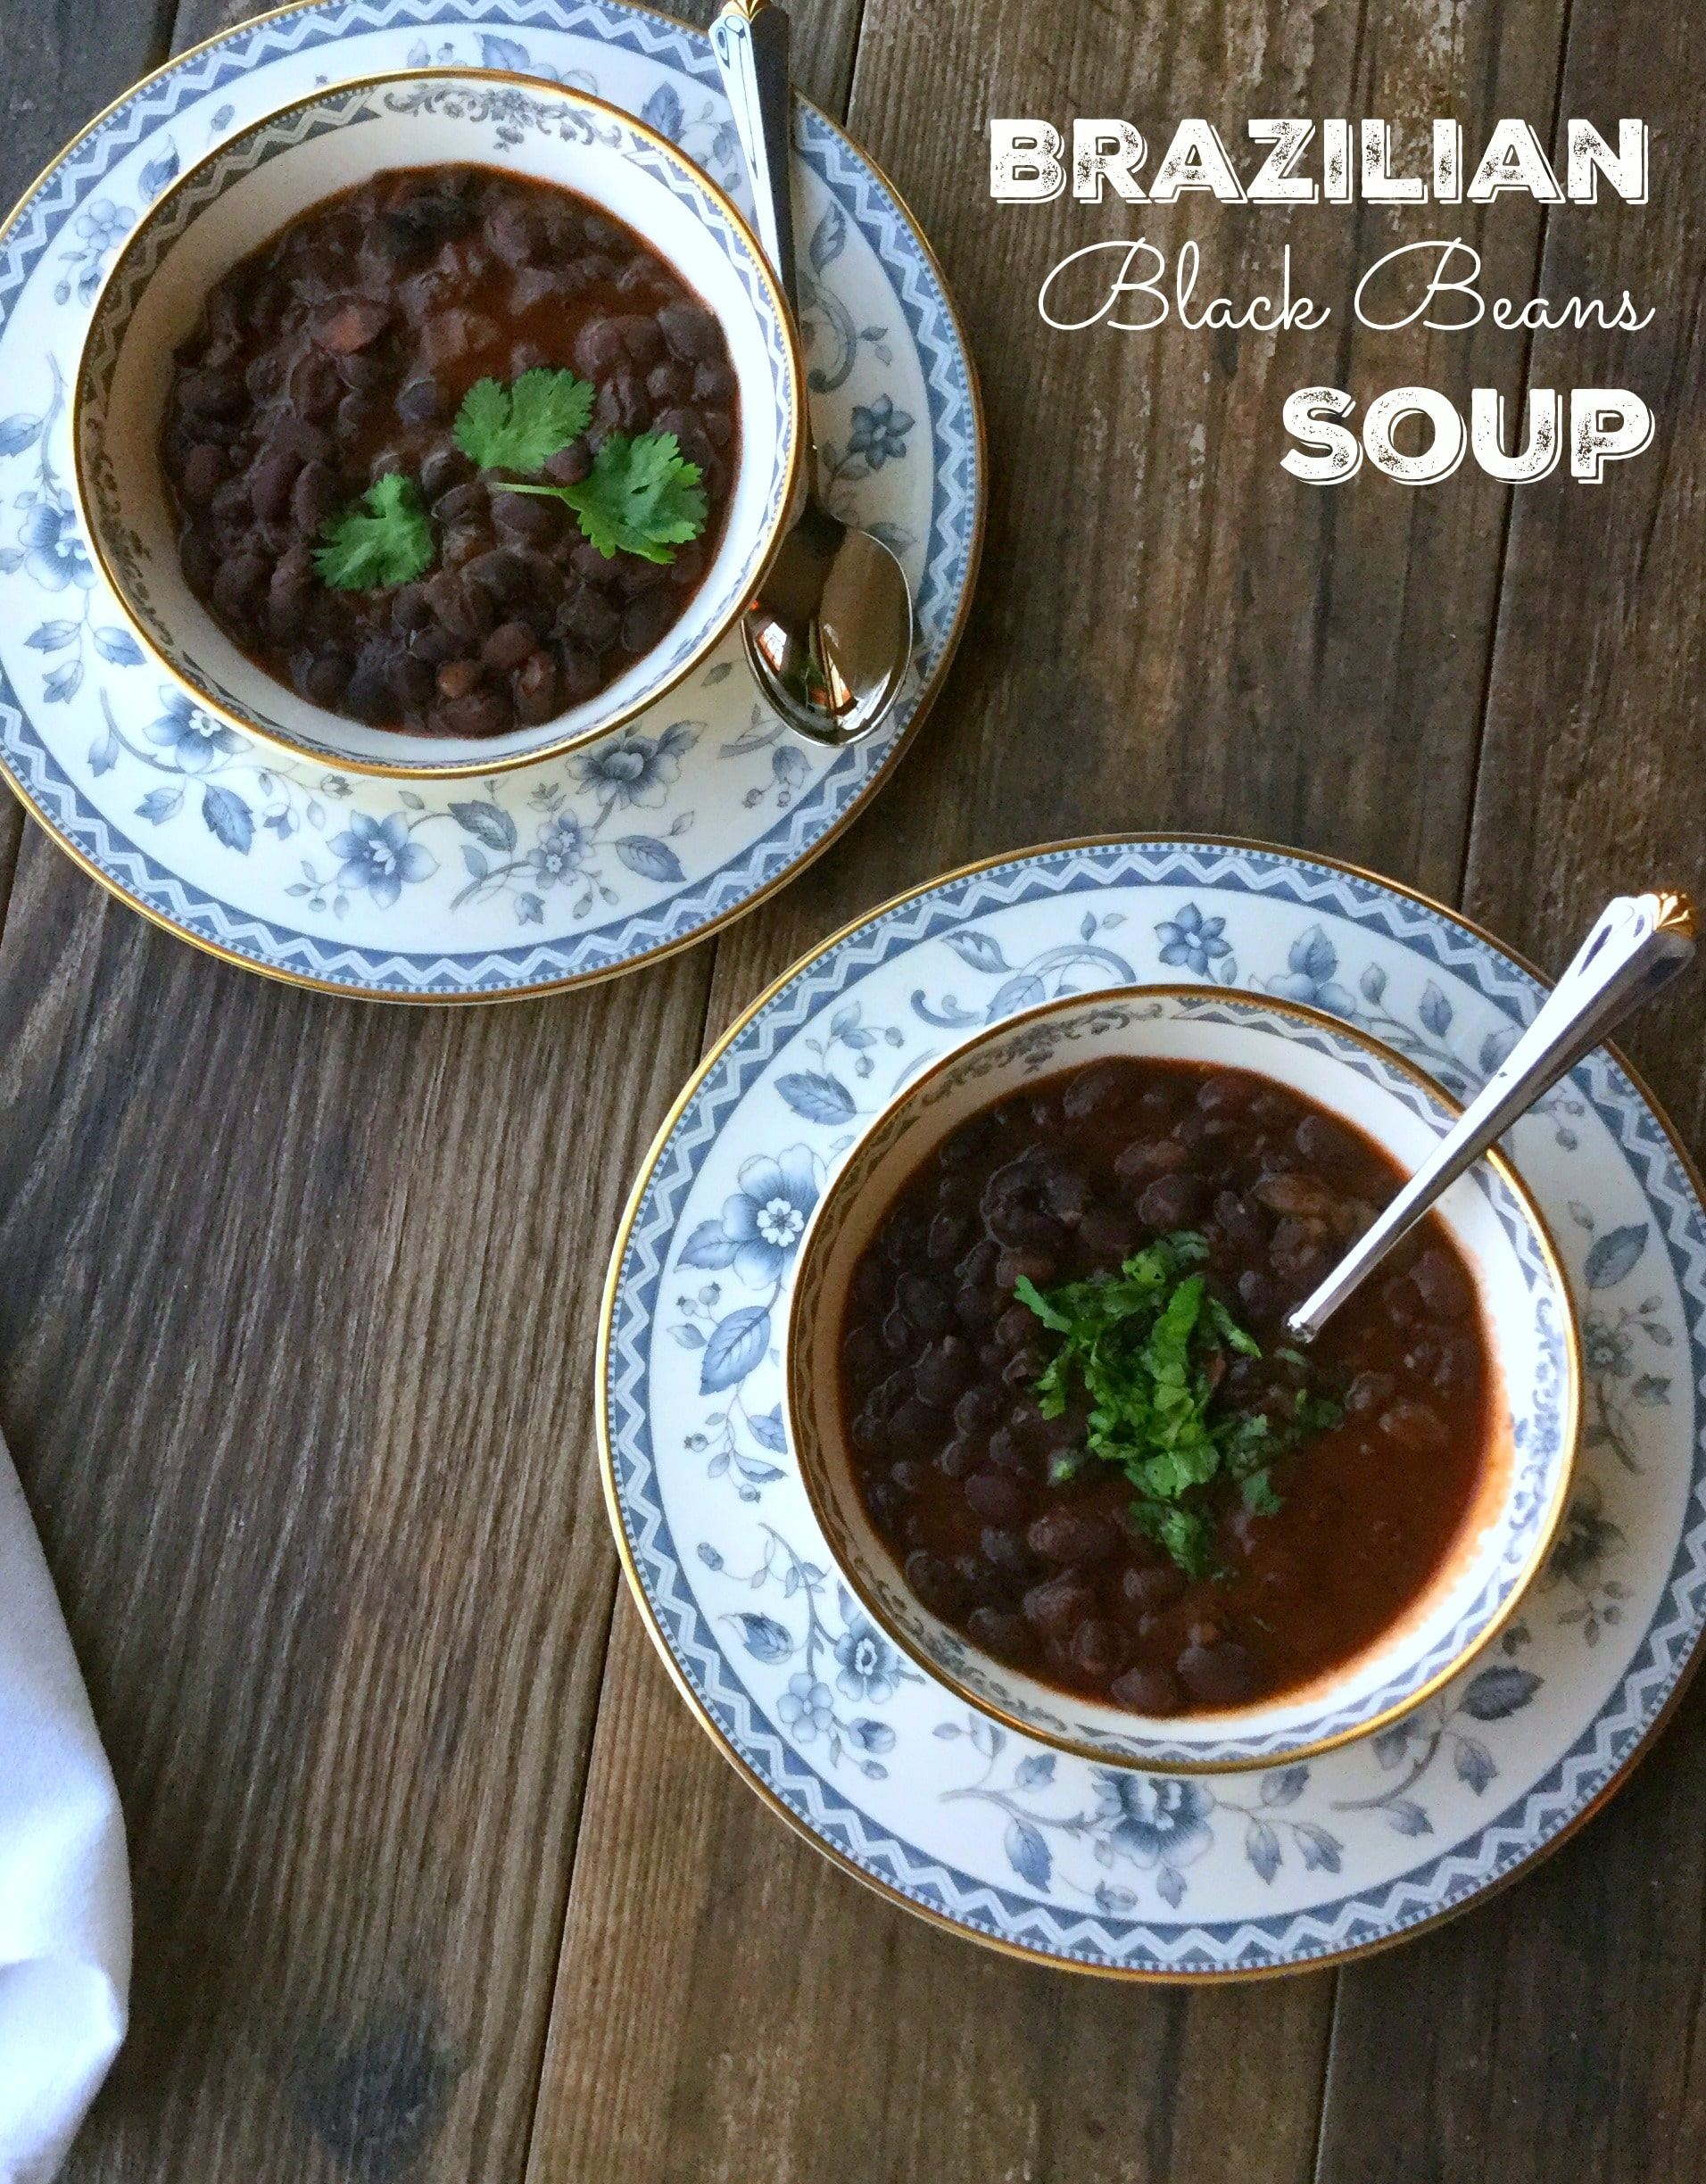 What a delicious way to pack in some nutrition while enjoying a tasty soup! This black beans soup is all about the flavors. So filling and satisfying, this soup is a one dish meal.